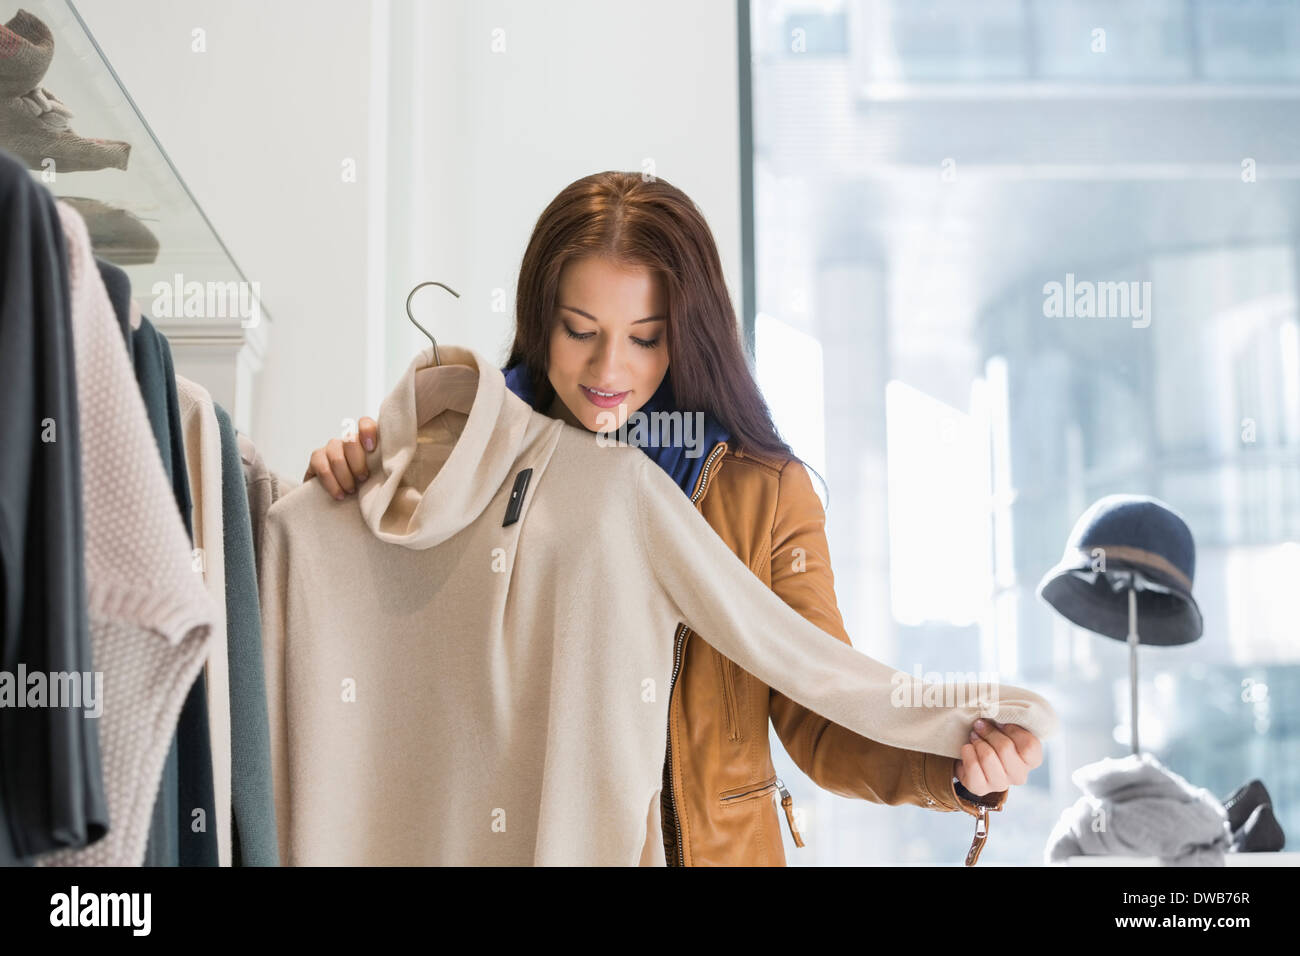 Young woman choosing sweater in store Photo Stock